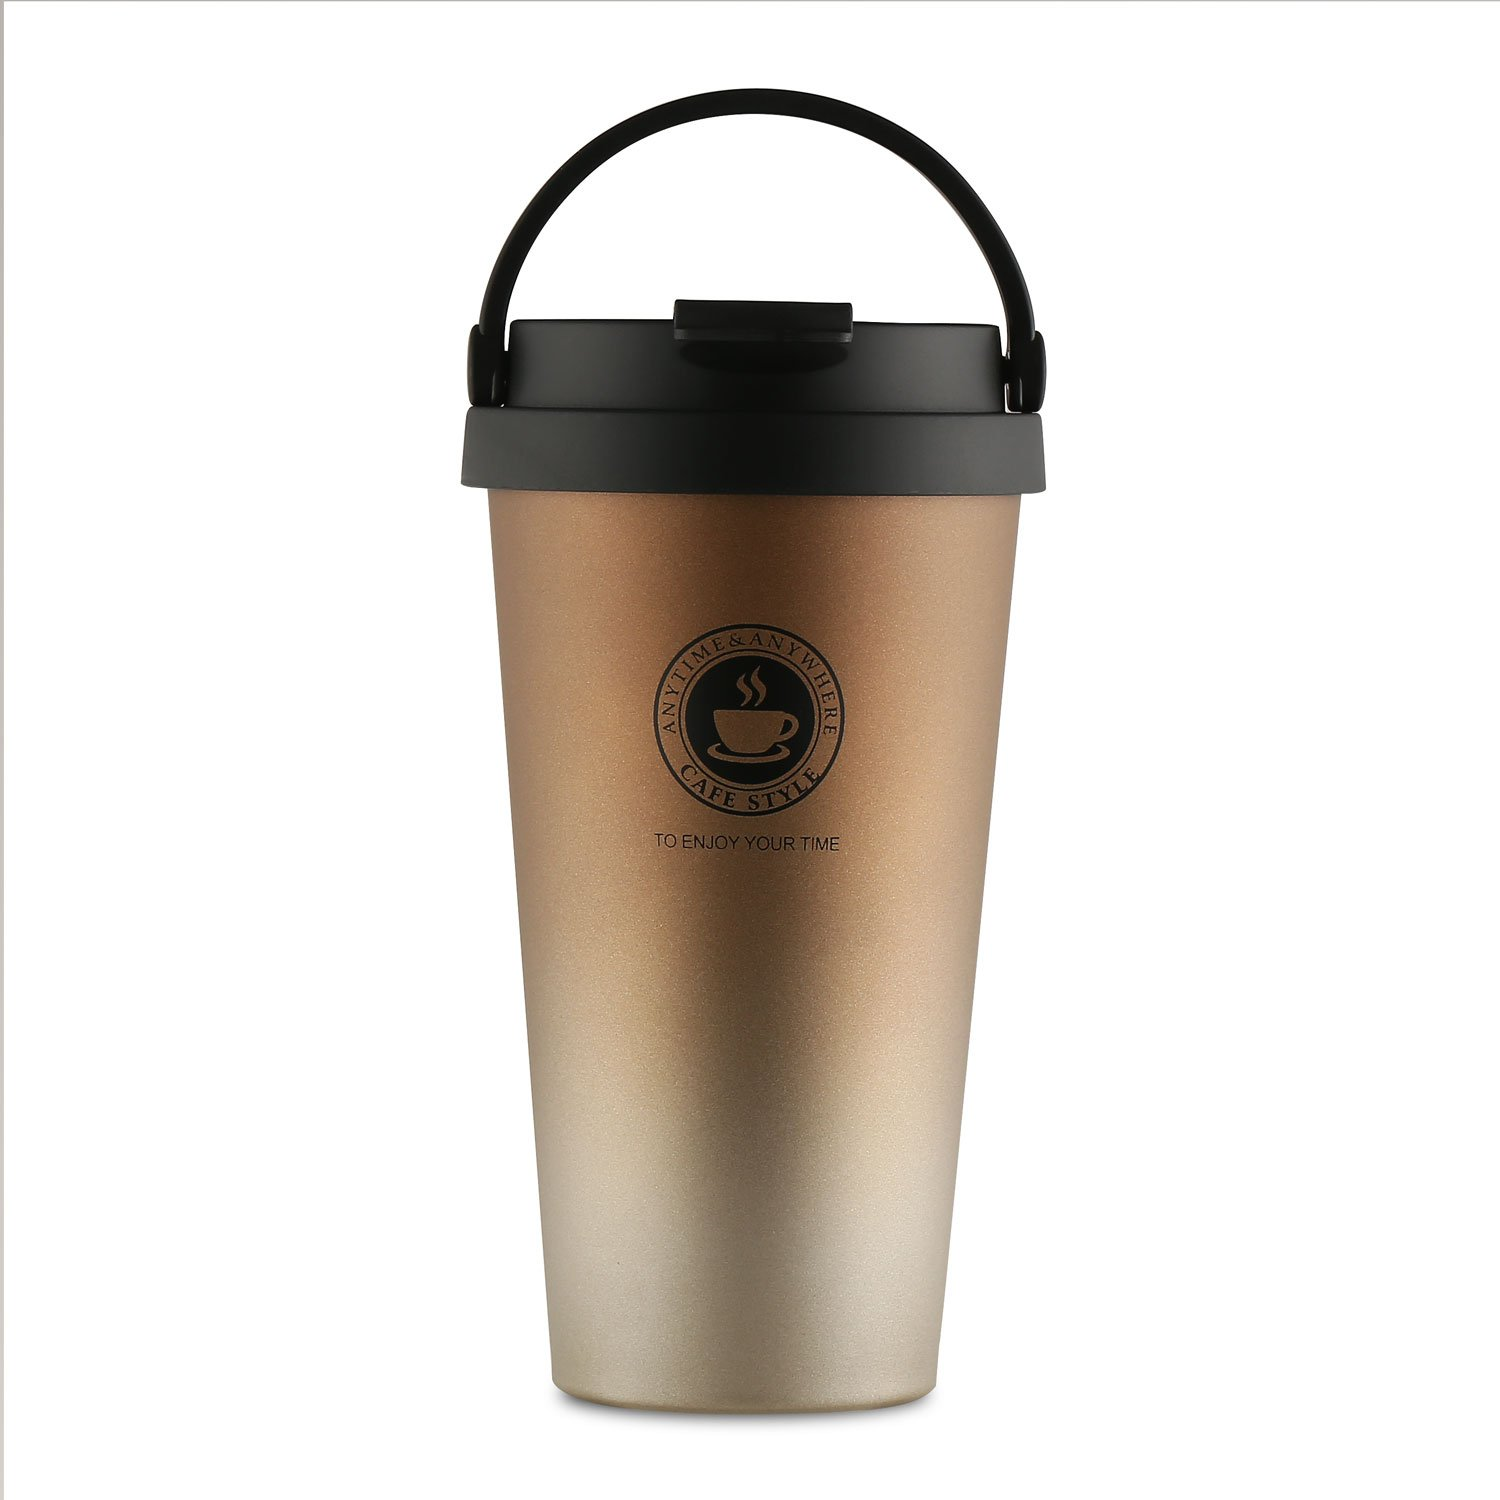 Home / portable Stainless Steel Coffee Mug Insulation / cold Beer Cup acuum Insulated Double-Walled 18/8 Stainless Steel Hydro Travel Mug Coffee color 17OZ (500ml) by SEPT MIRACLE (Image #4)